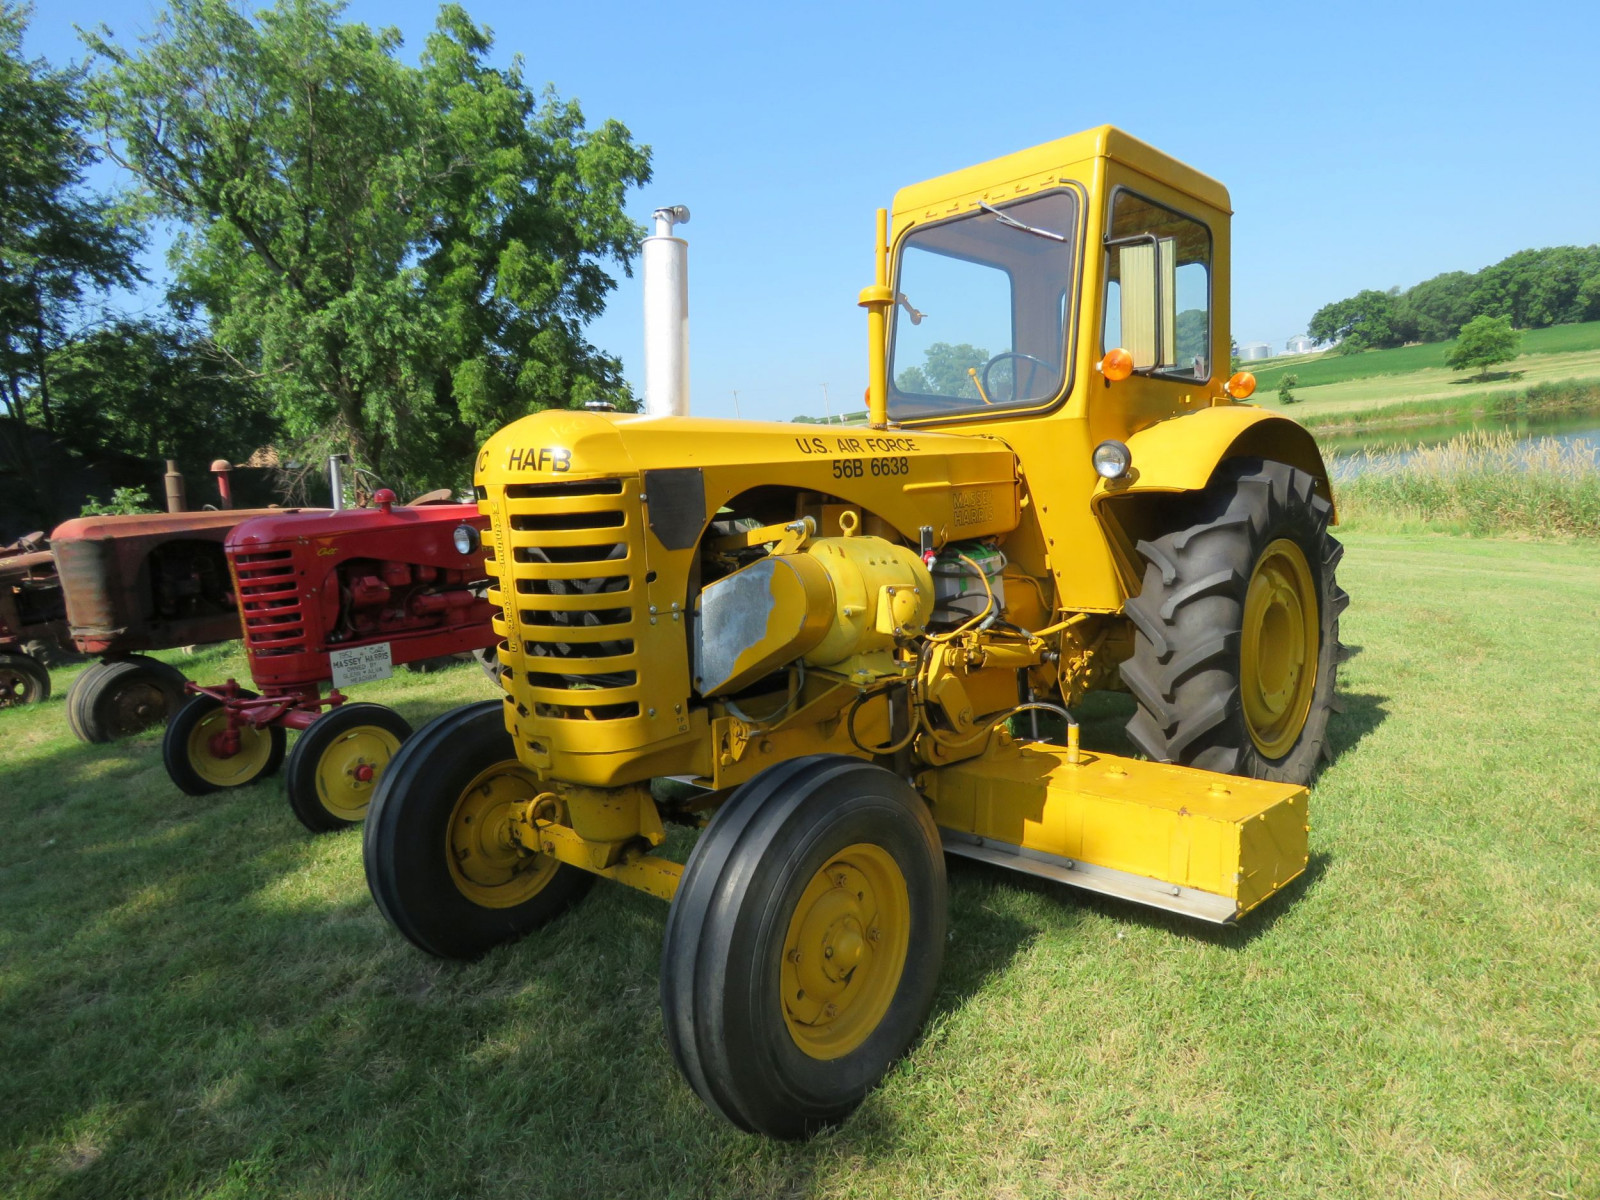 1956 Massey Harris 333 Tractor with Sabre Magnetic Sweeper - Image 3